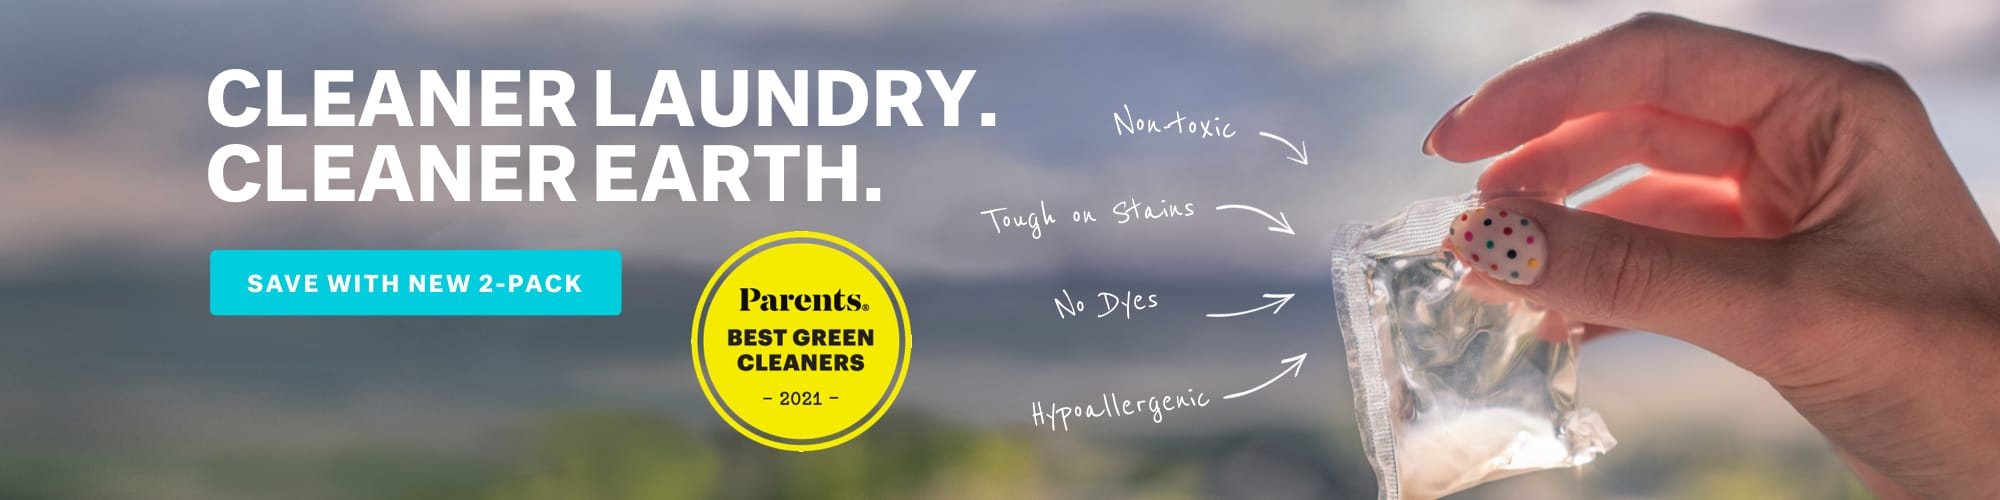 Cleaner Laundry.  Cleaner Earth.  Parents Magazine awarded Brandless Laundry Detergent Packs